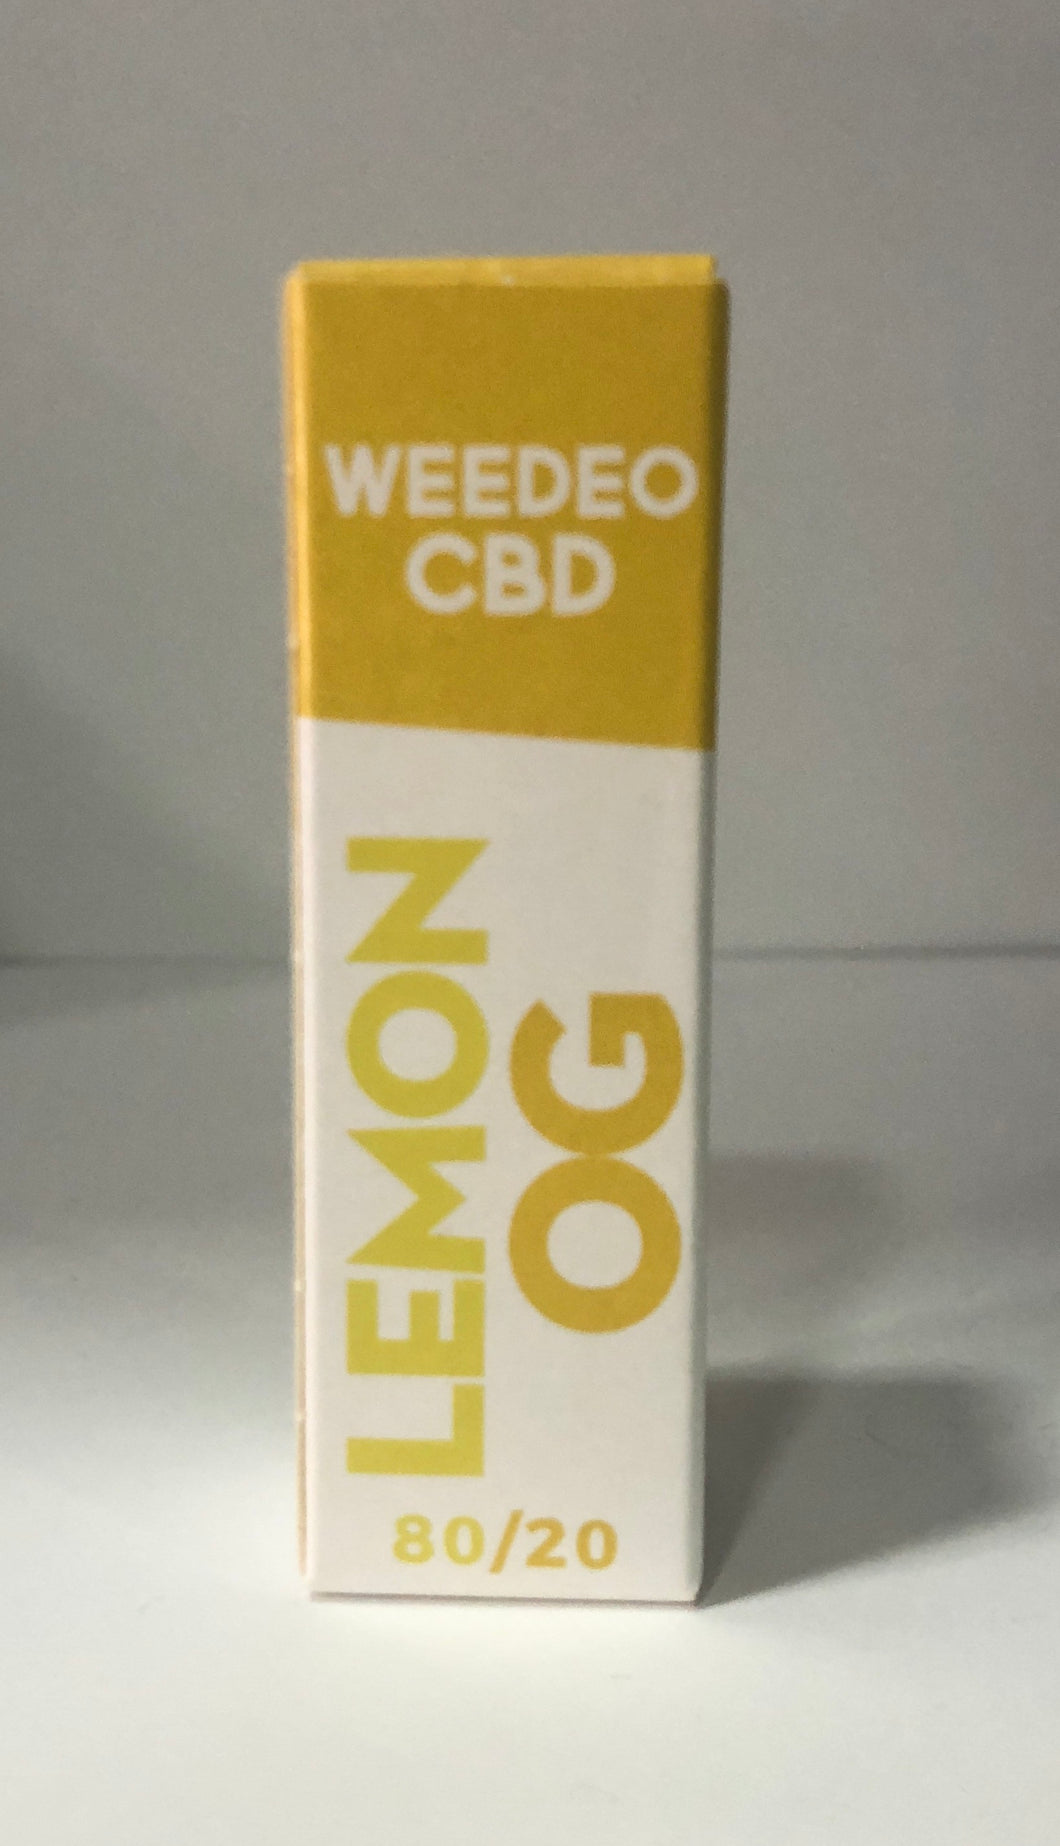 LEMON OG WEEDEO CBD 30mg 100mg 300mg (10ml ) - HEMPOINT CBD